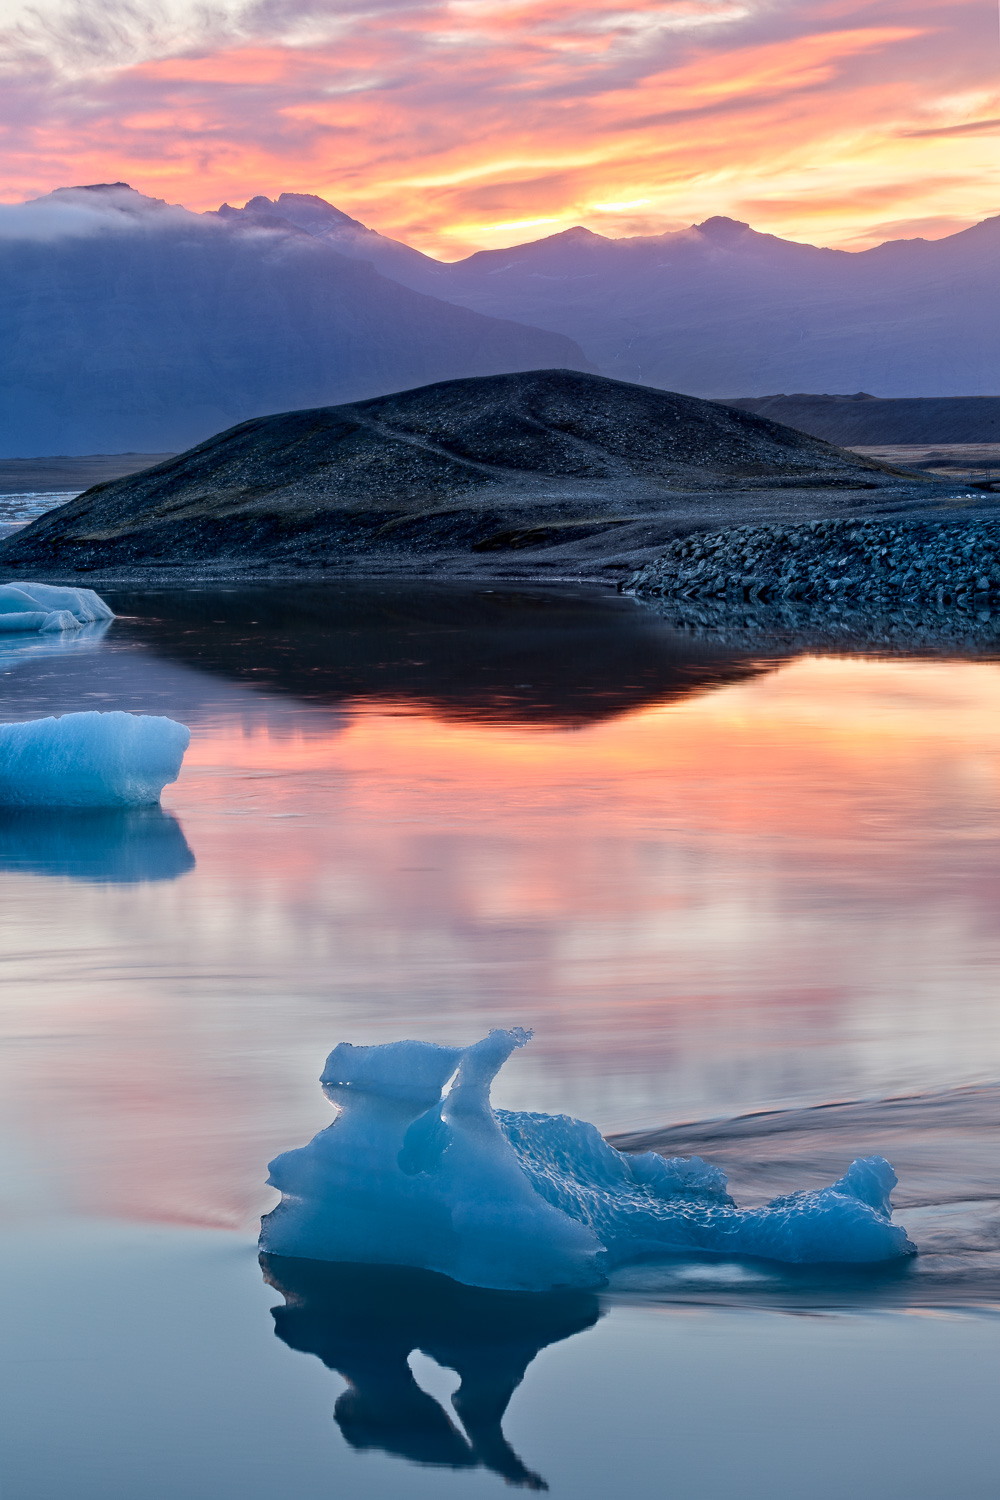 The serenity was palpable as the sun set on    Jökulsárlón Glacier Lagoon    in    Iceland   . The warmth of the sunset and the cool blue of the iceberg and lagoon provided a striking contrast in color and mood.